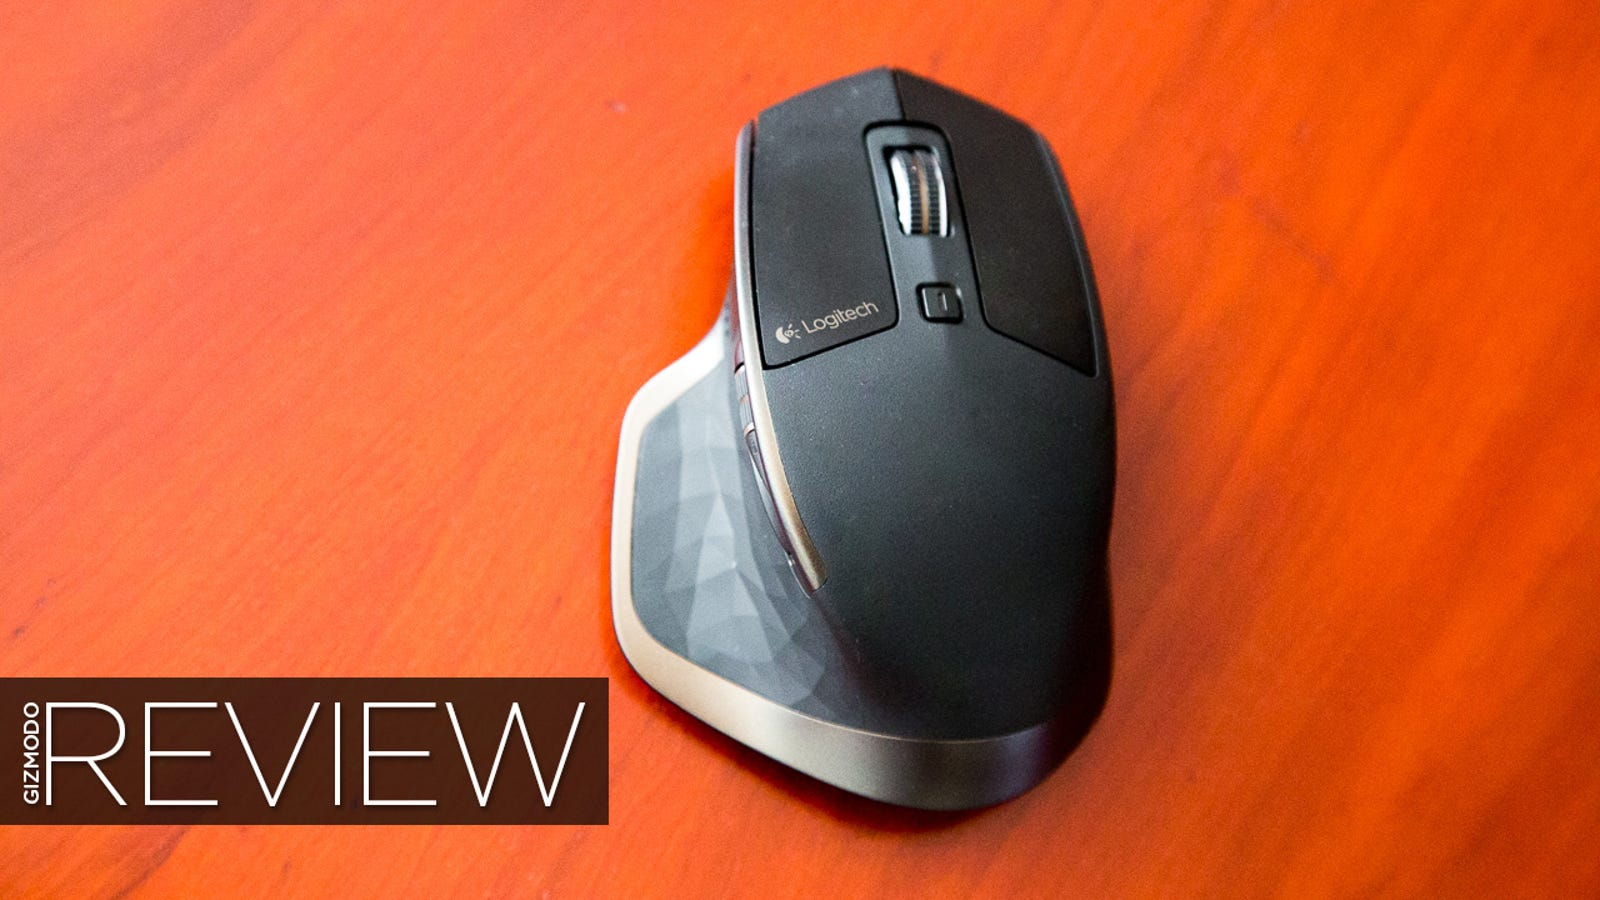 Logitech MX Master Review: The Best Mouse Got Better